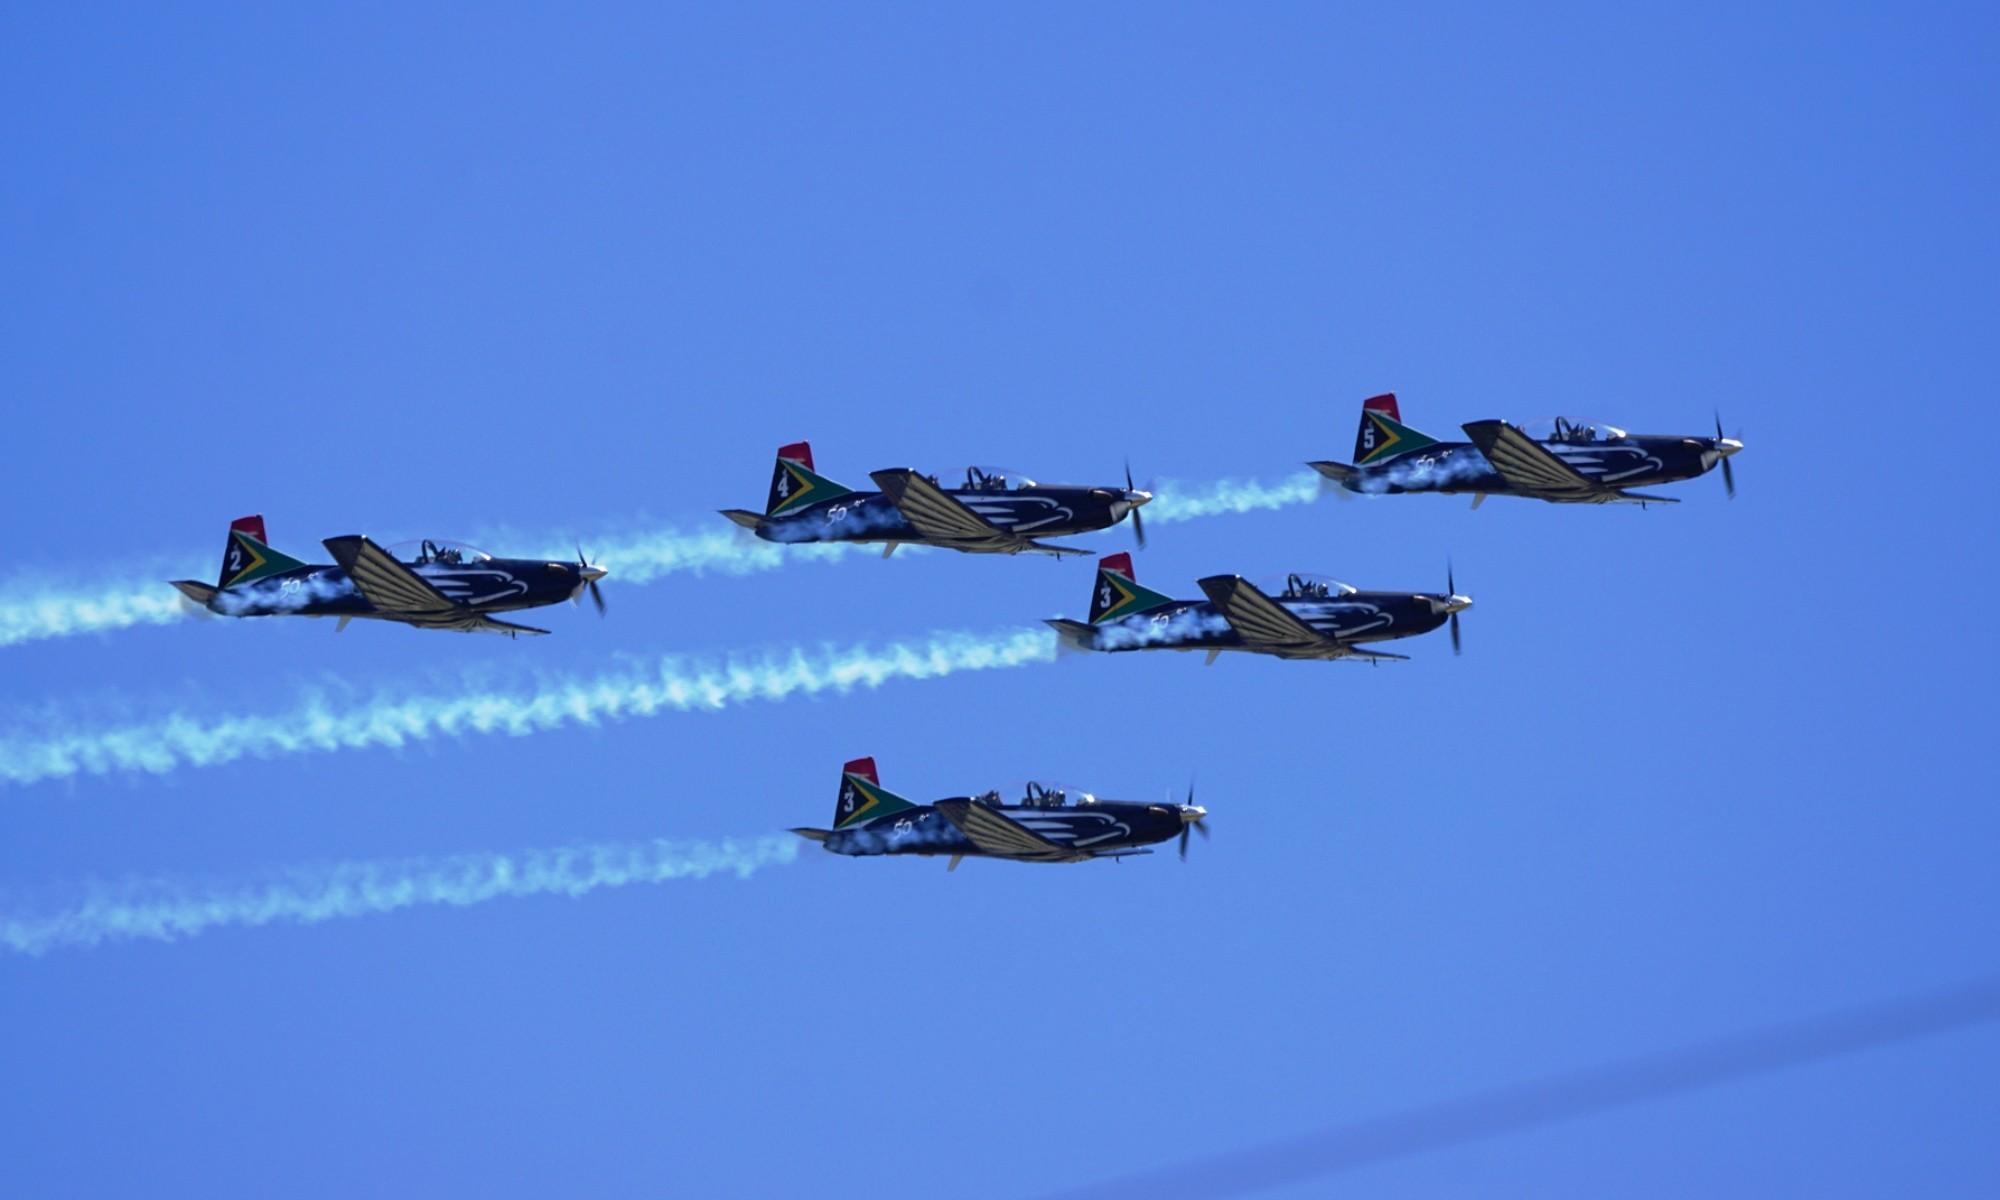 The Silver Falcons provided a spectacle between the on-track action.